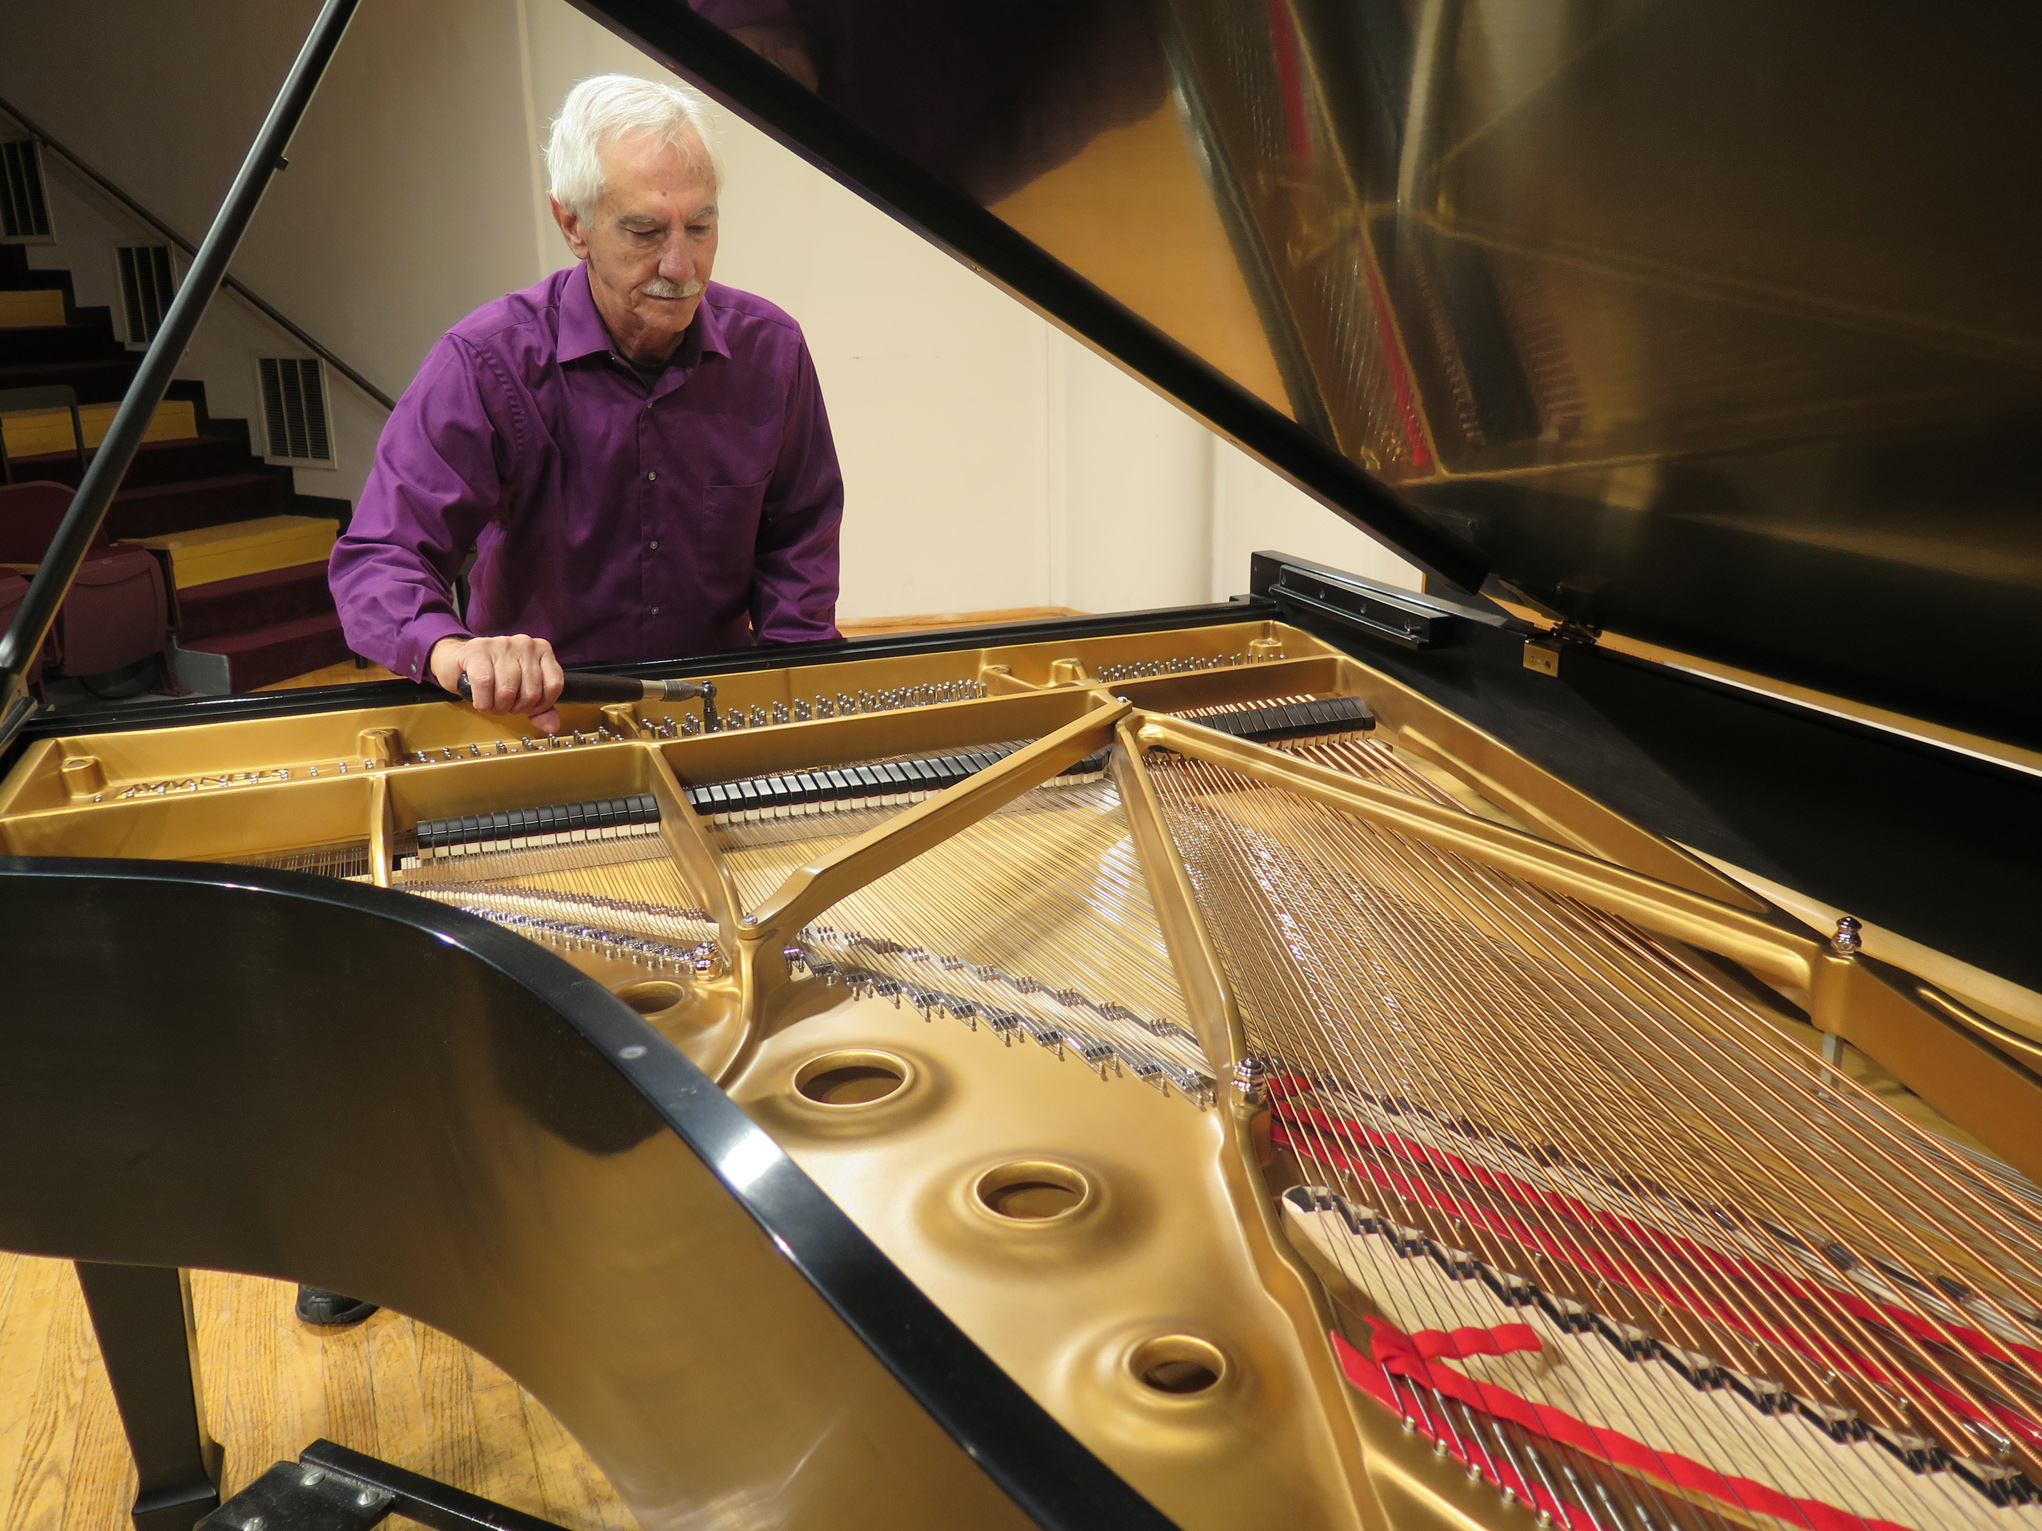 Piano technician tuning the new Steinway grand piano